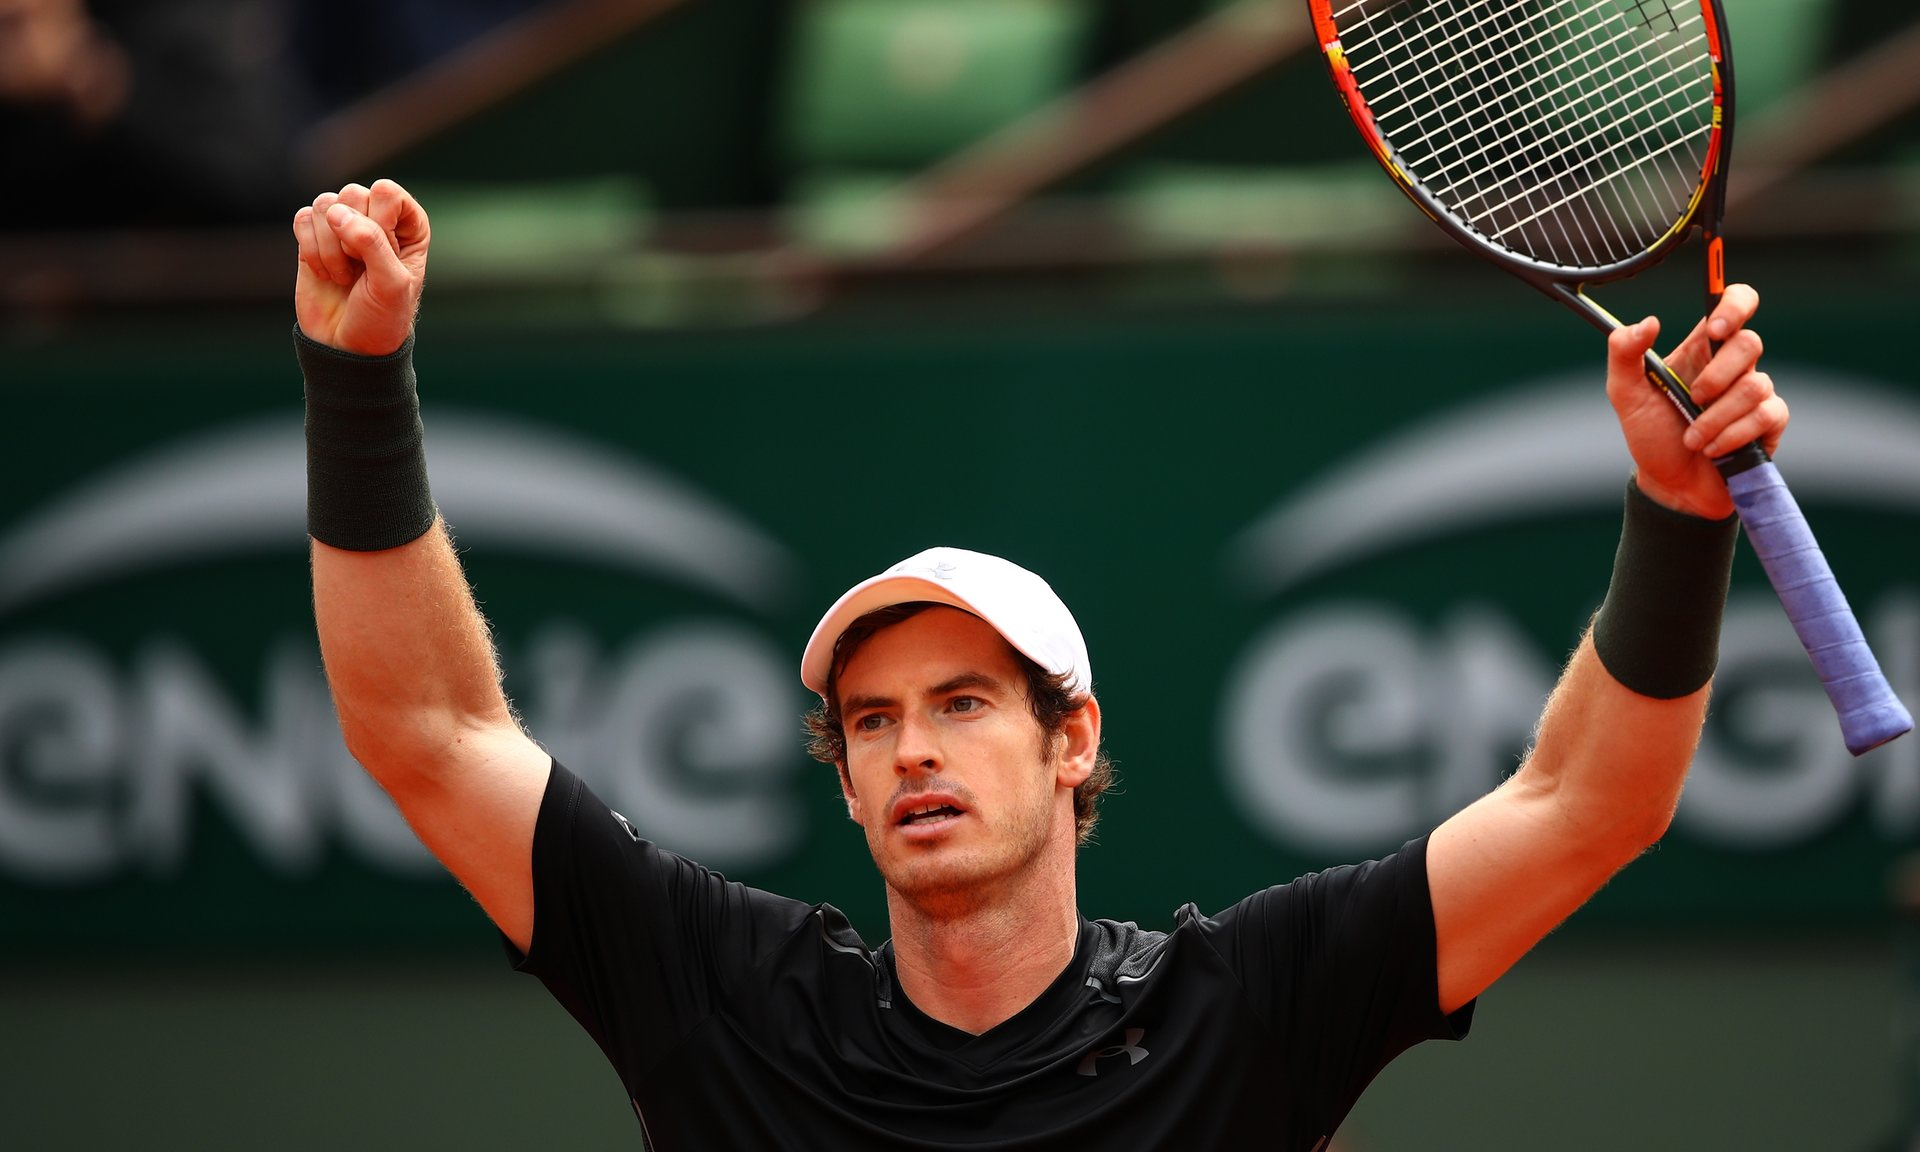 Andy Murray advances to 2nd round of French Open 2016